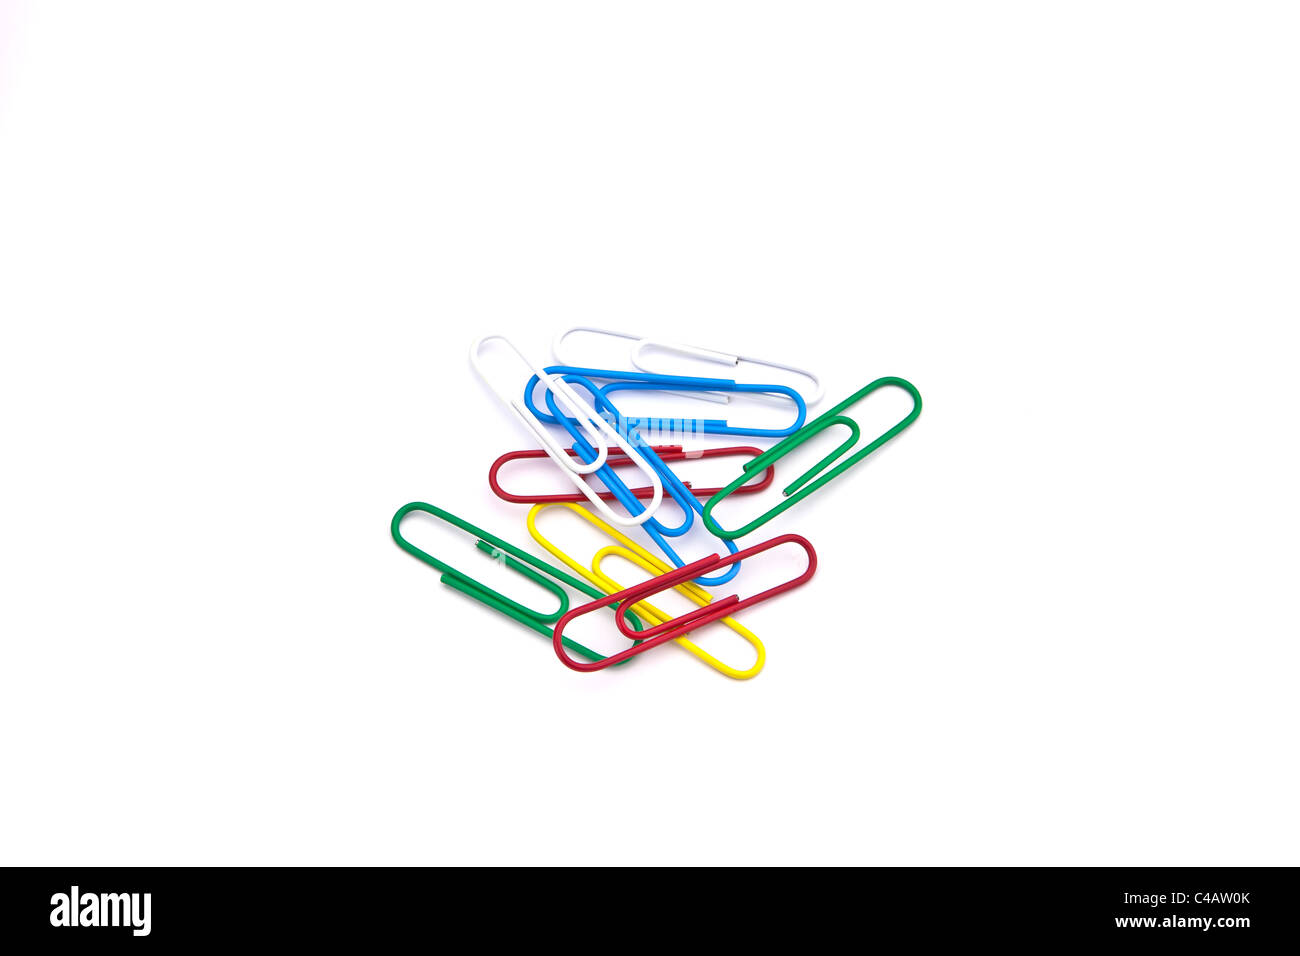 colored paper clips on white background - Stock Image